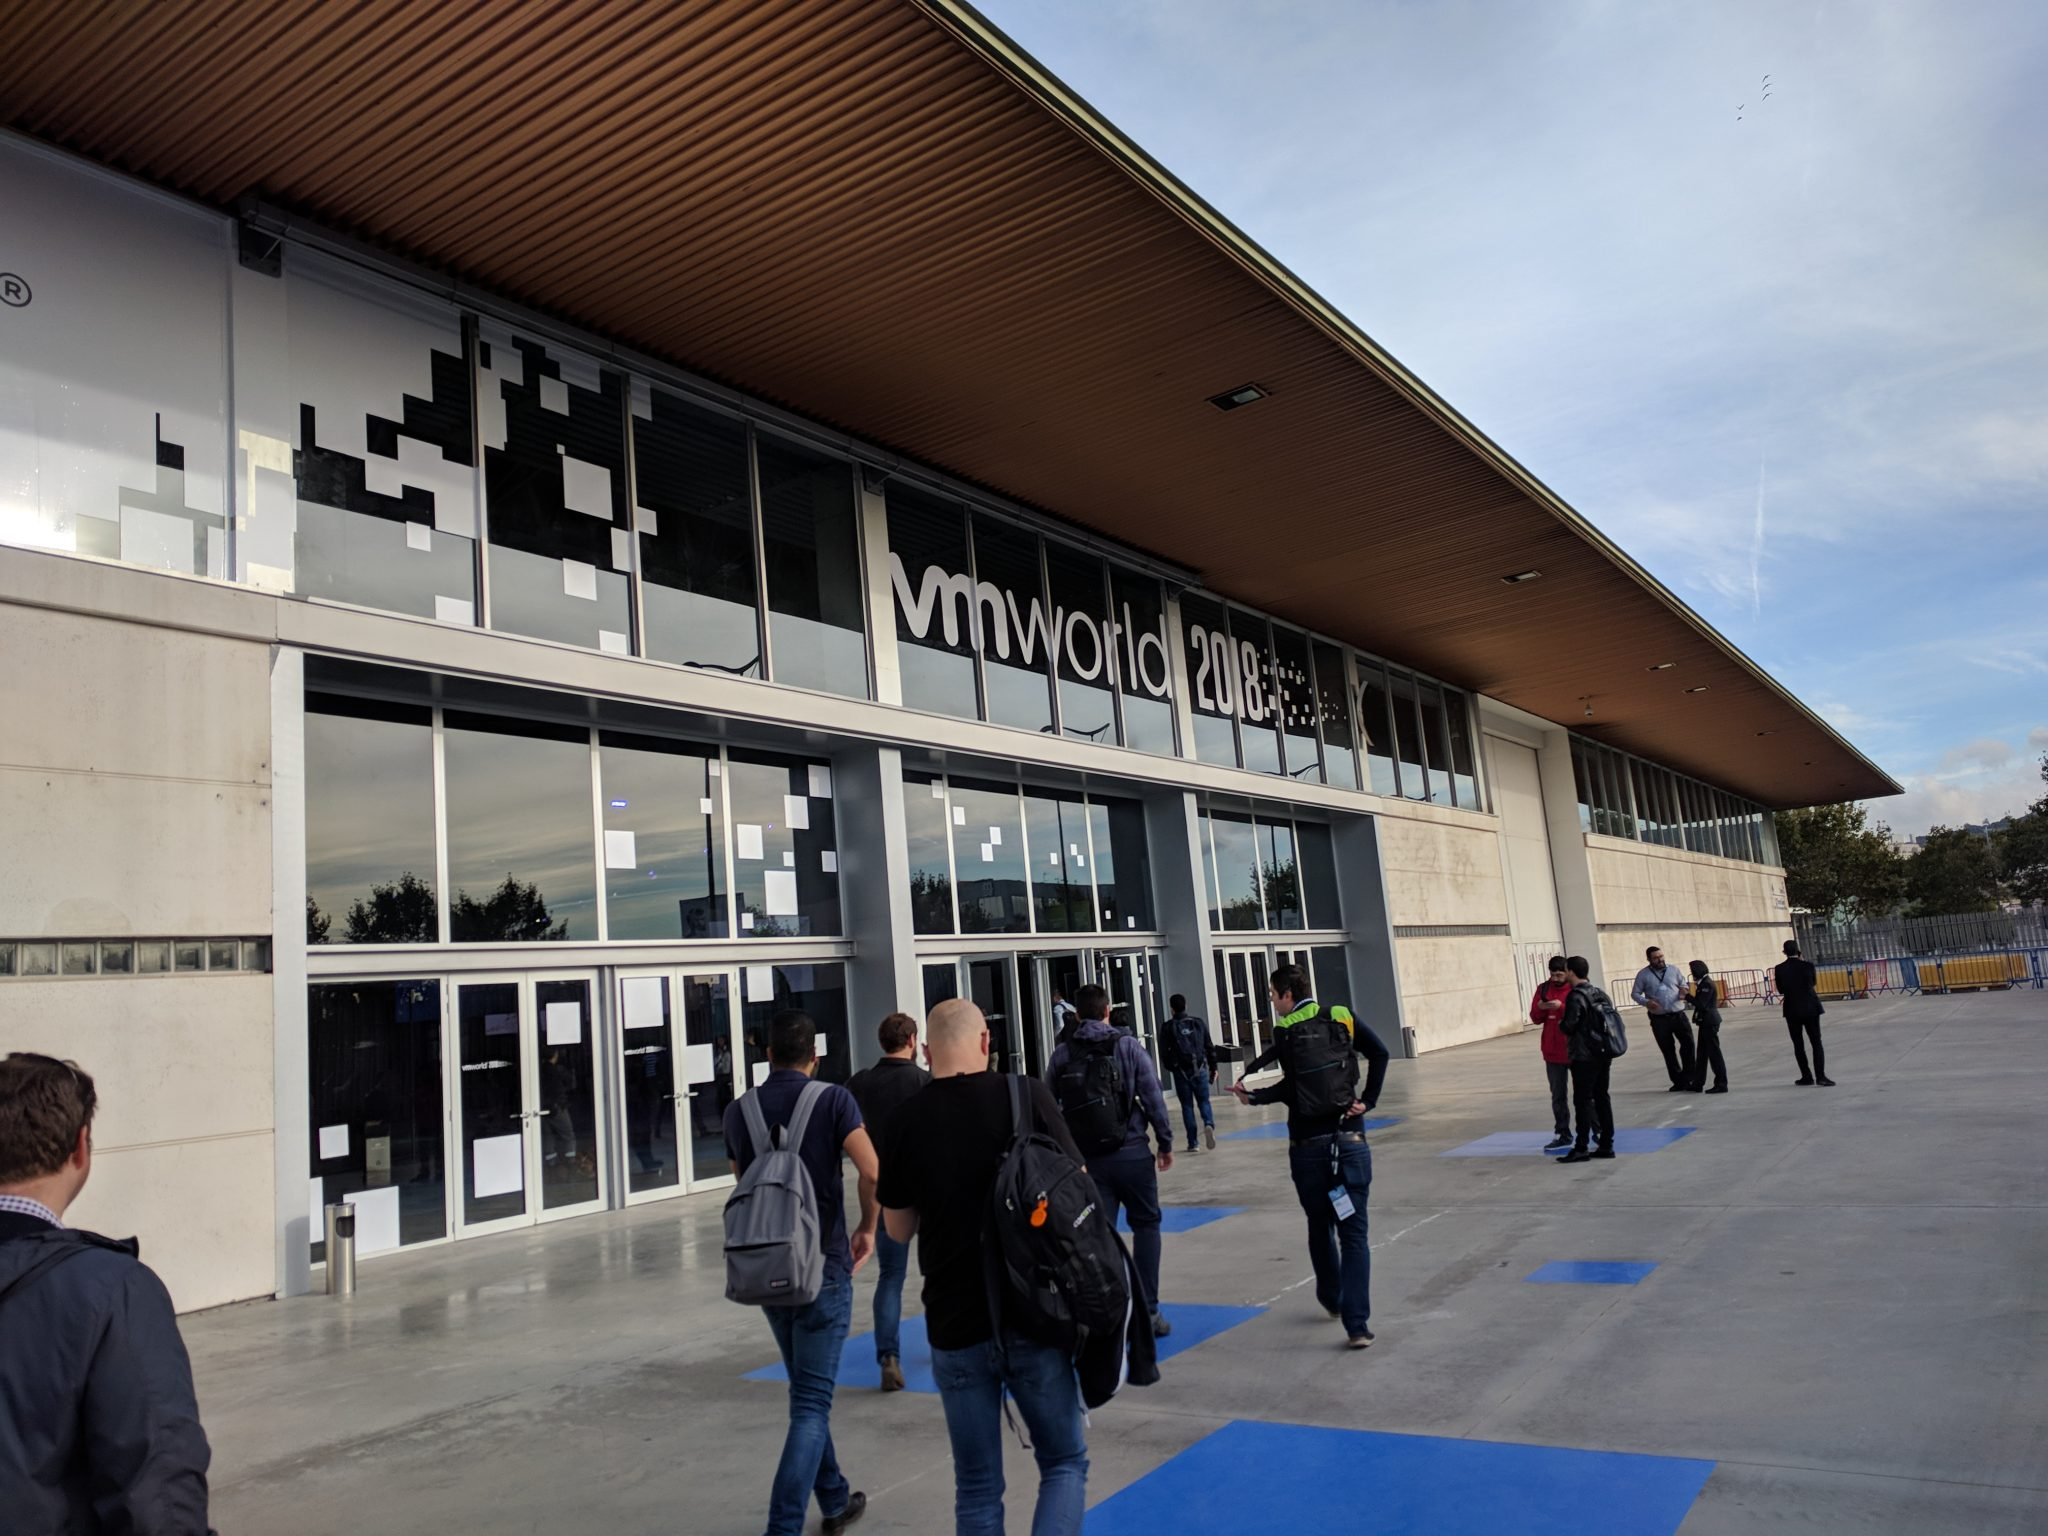 VMworld 2018 EU - Entrance Building